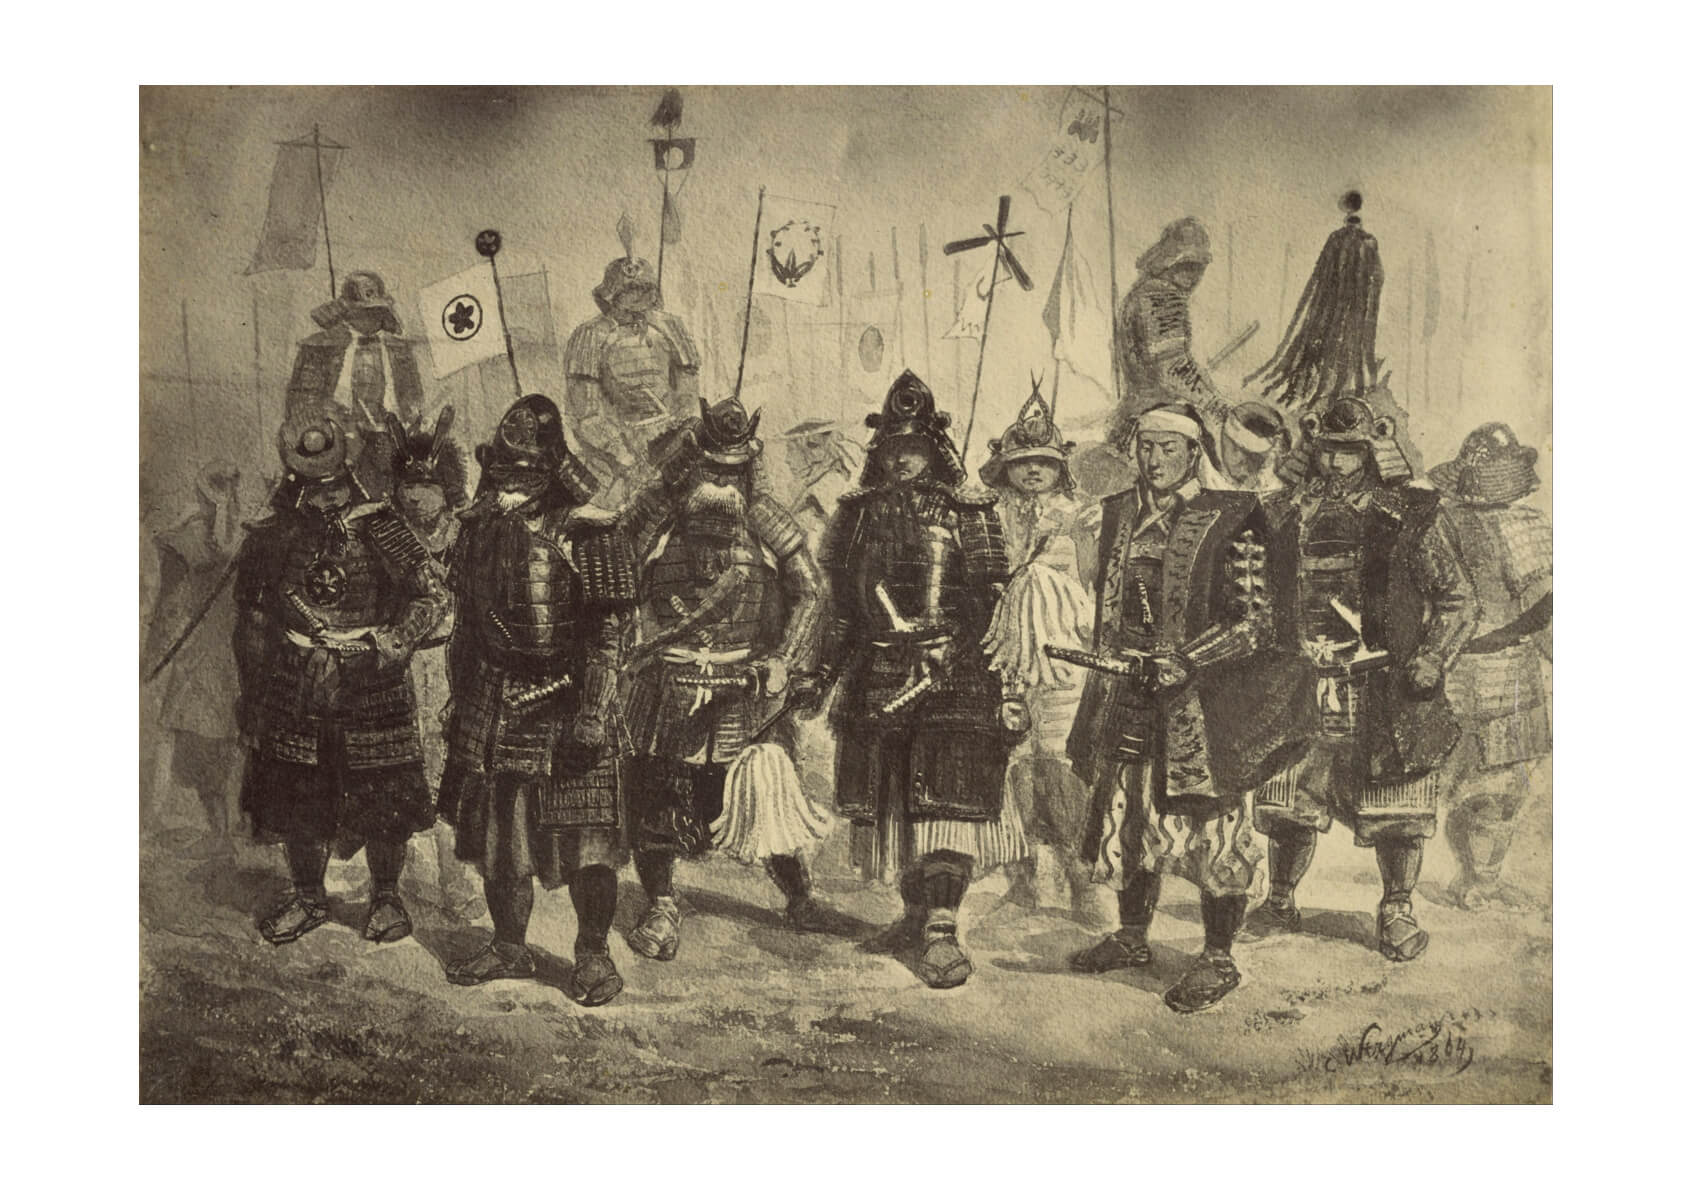 Felice Beato (British born Italy (Photographic Copy of a Drawing of Japanese Warriors by Charles Wirgman)